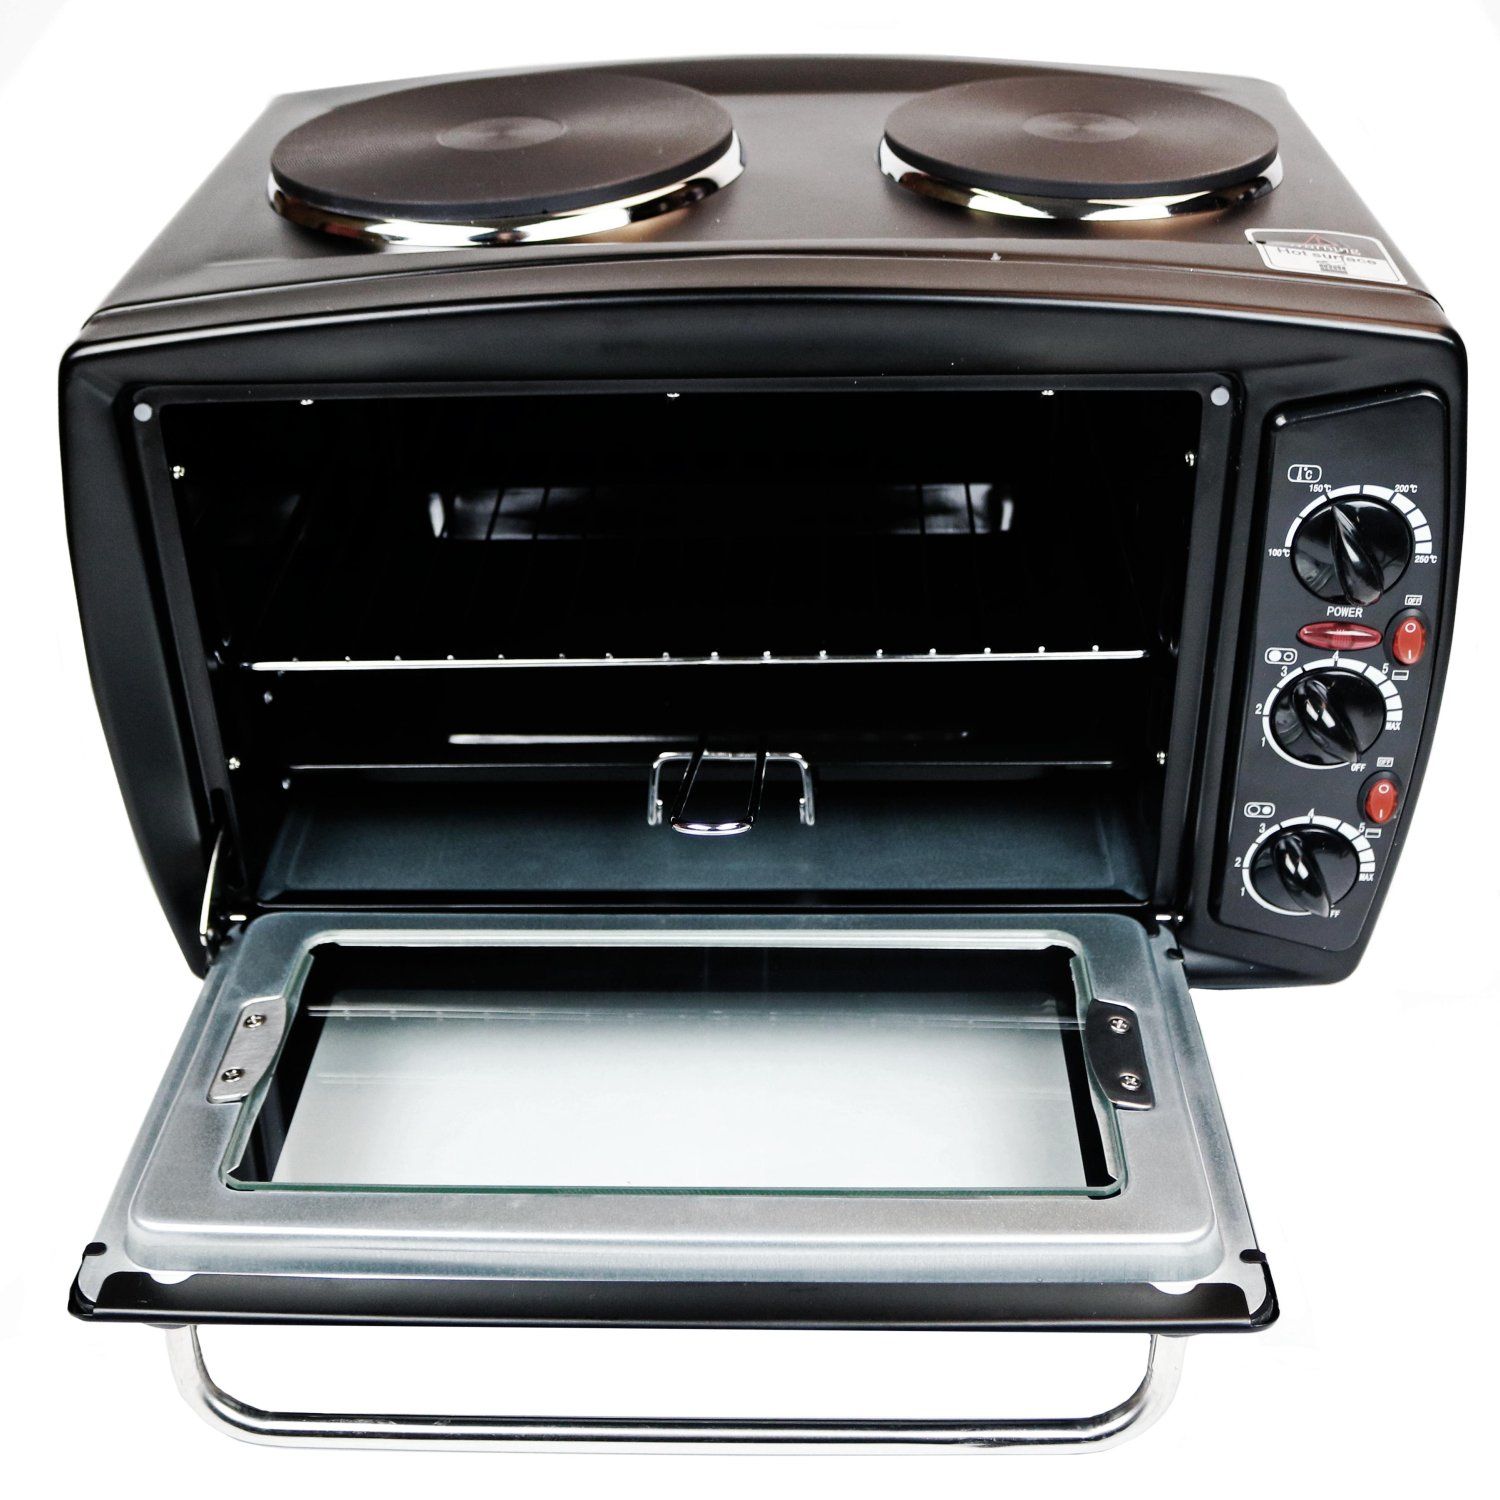 Mini Kitchen Oven ~ Mini oven kitchen mate c w hot plates and grill £